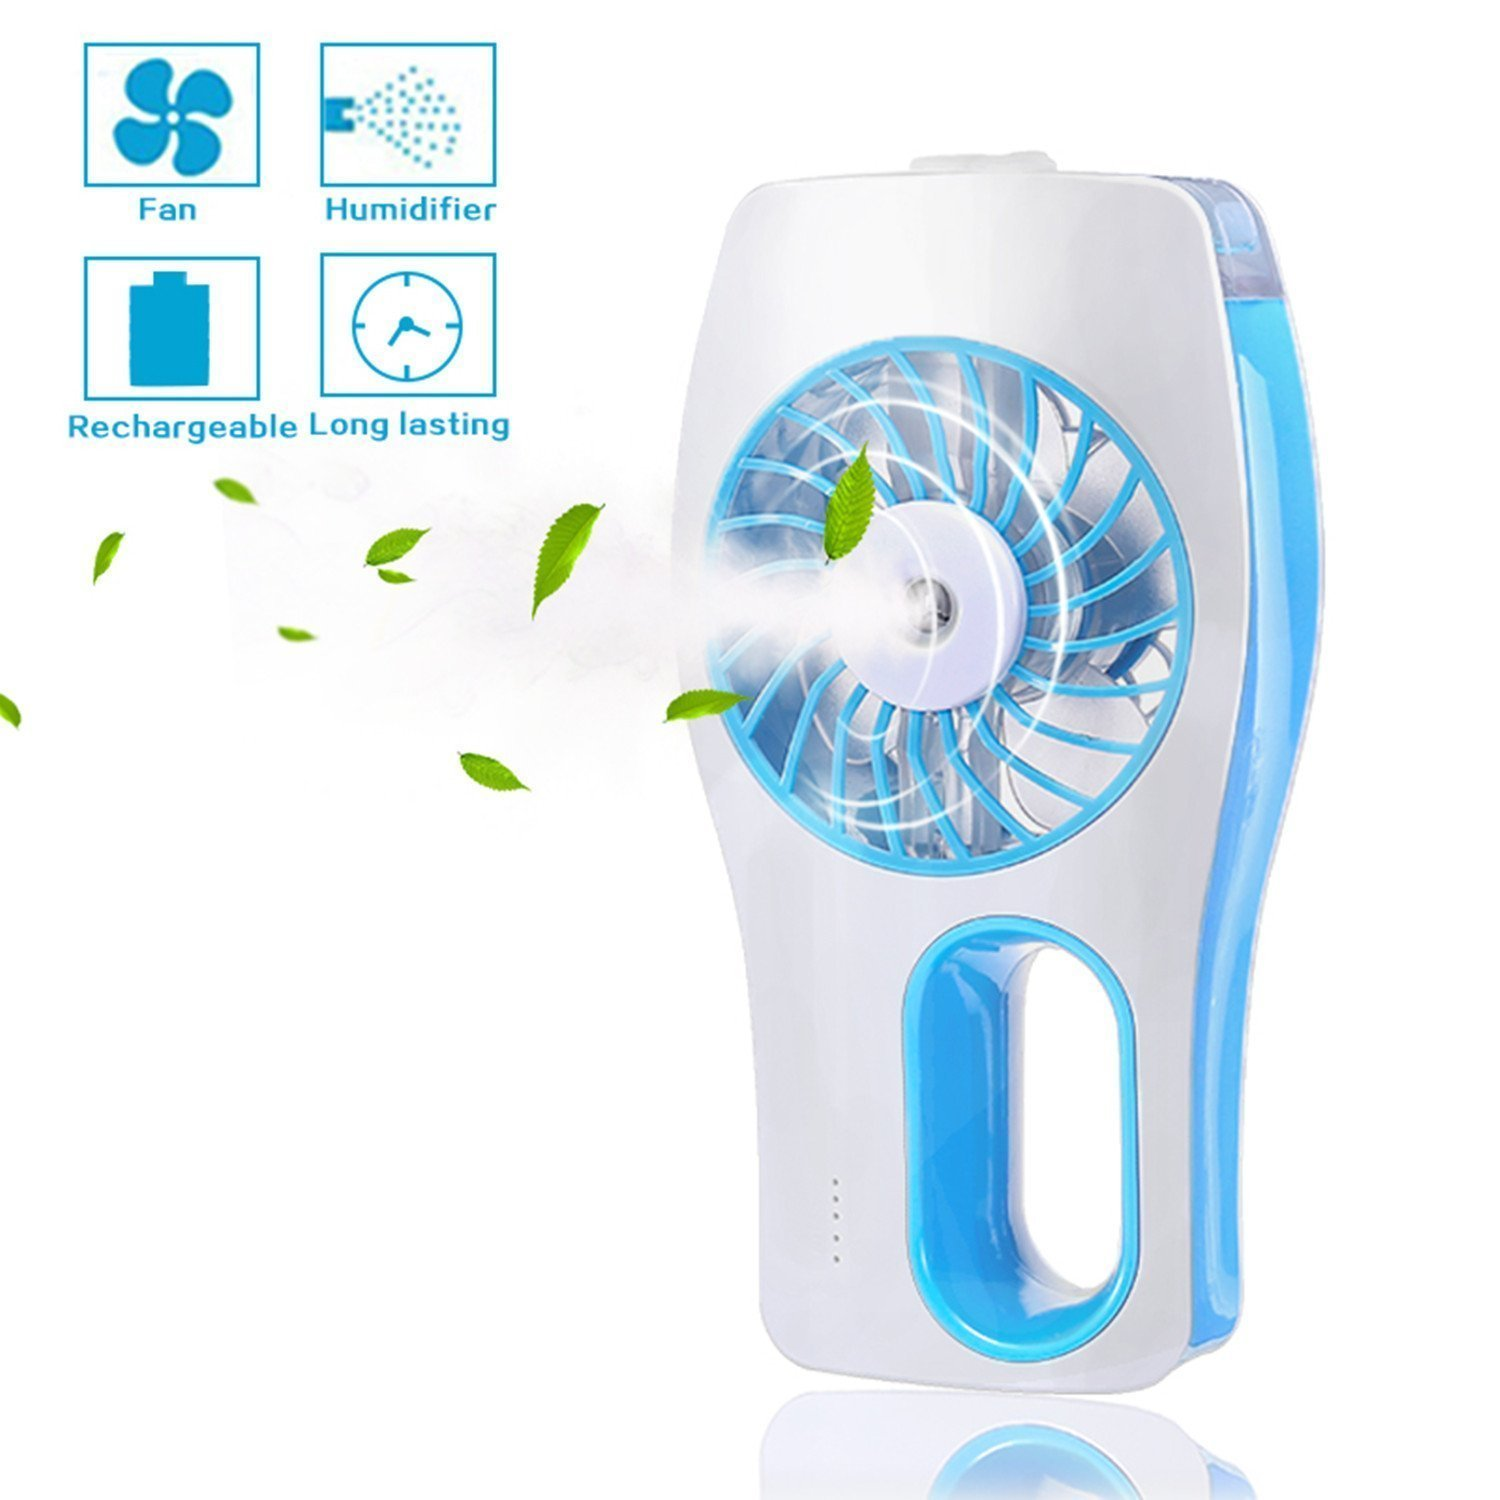 Misting Mini USB Handheld Fan,Humidifier Mist Water Spray Air Condictioning Moisturizing Fan Portable Face Spray Mist Humidifier Built-in with Rechargeable Battery for Beauty,Home, Office, Travel